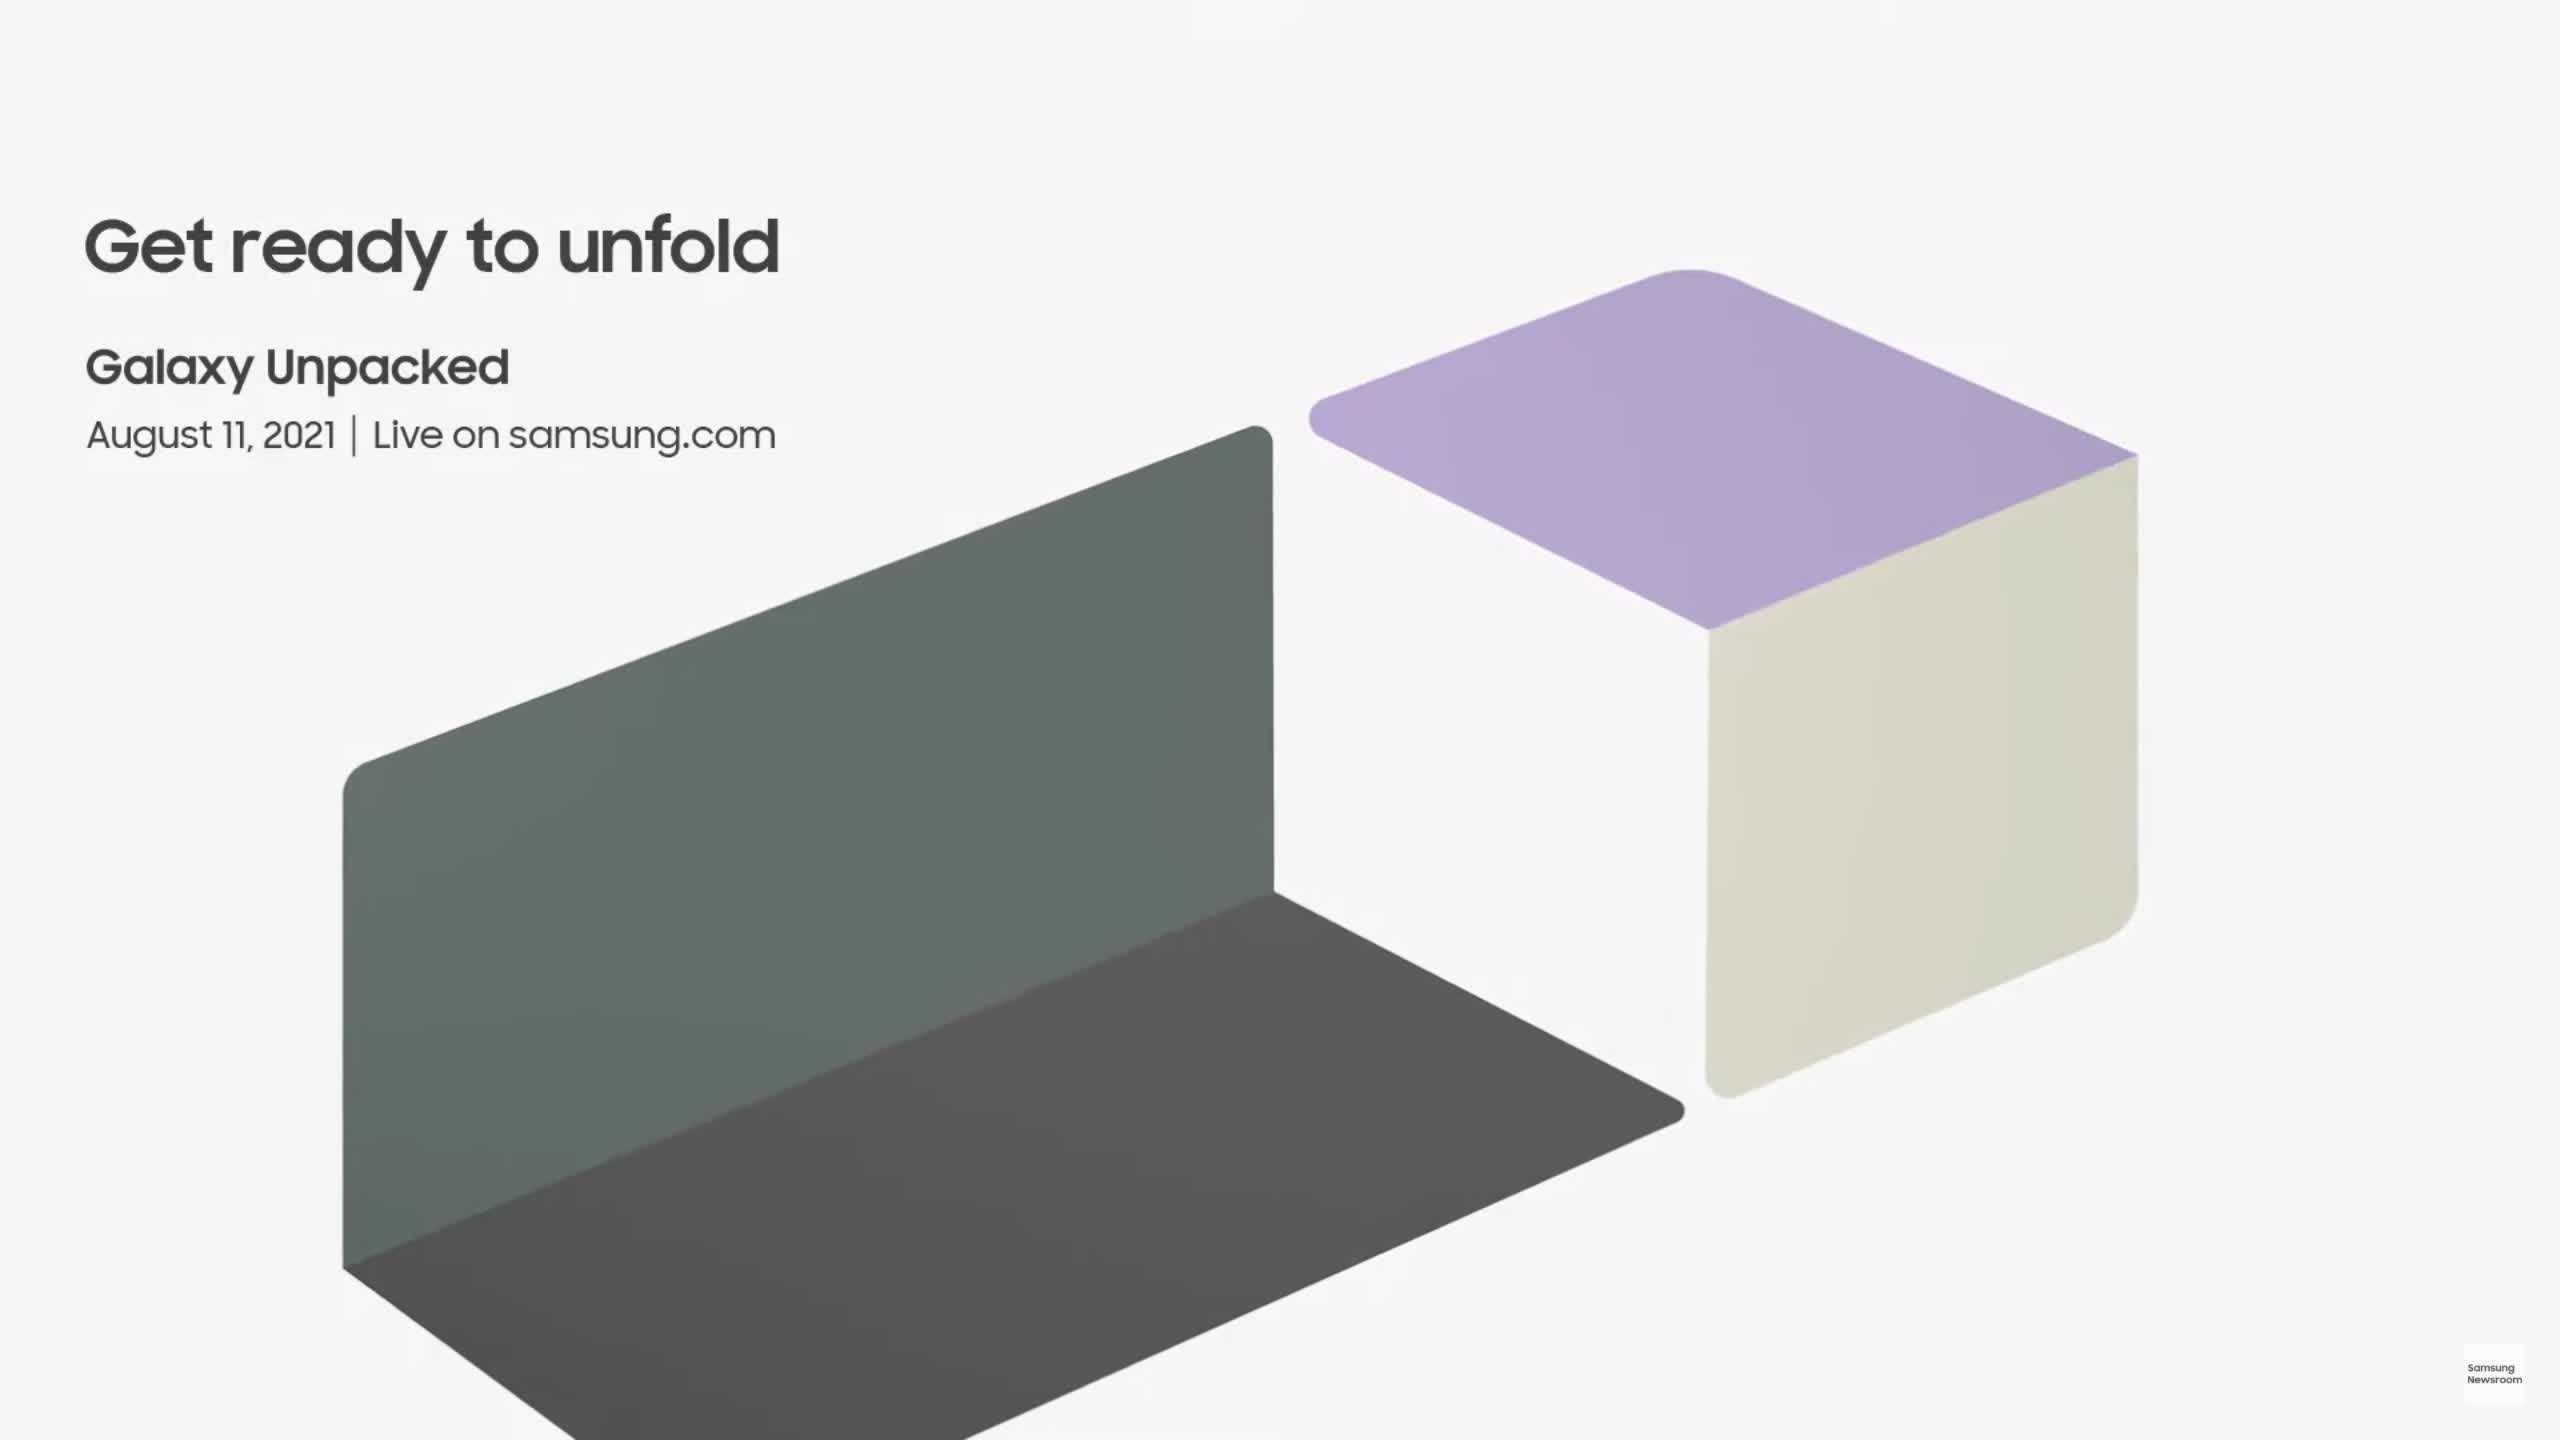 Samsung confirms Unpacked event for August 11, but there's no sign of the Galaxy Note 21